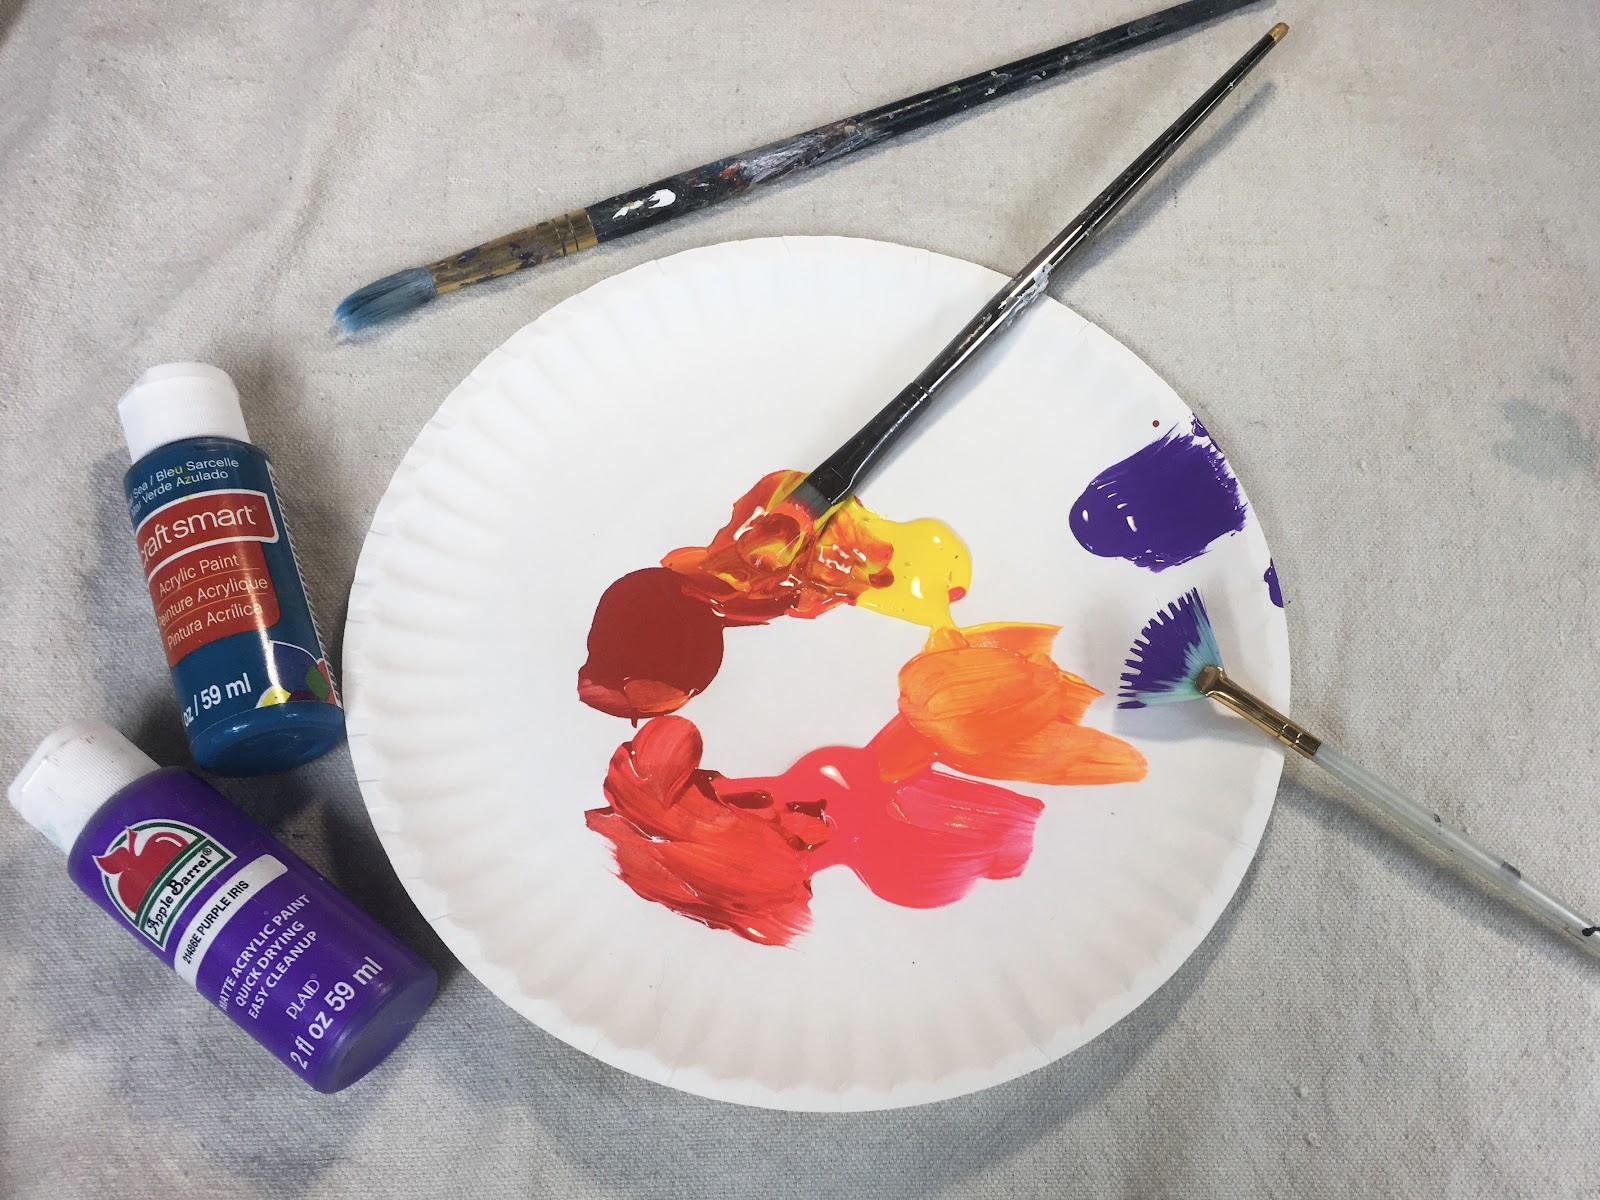 paint on a plate with paint brushes